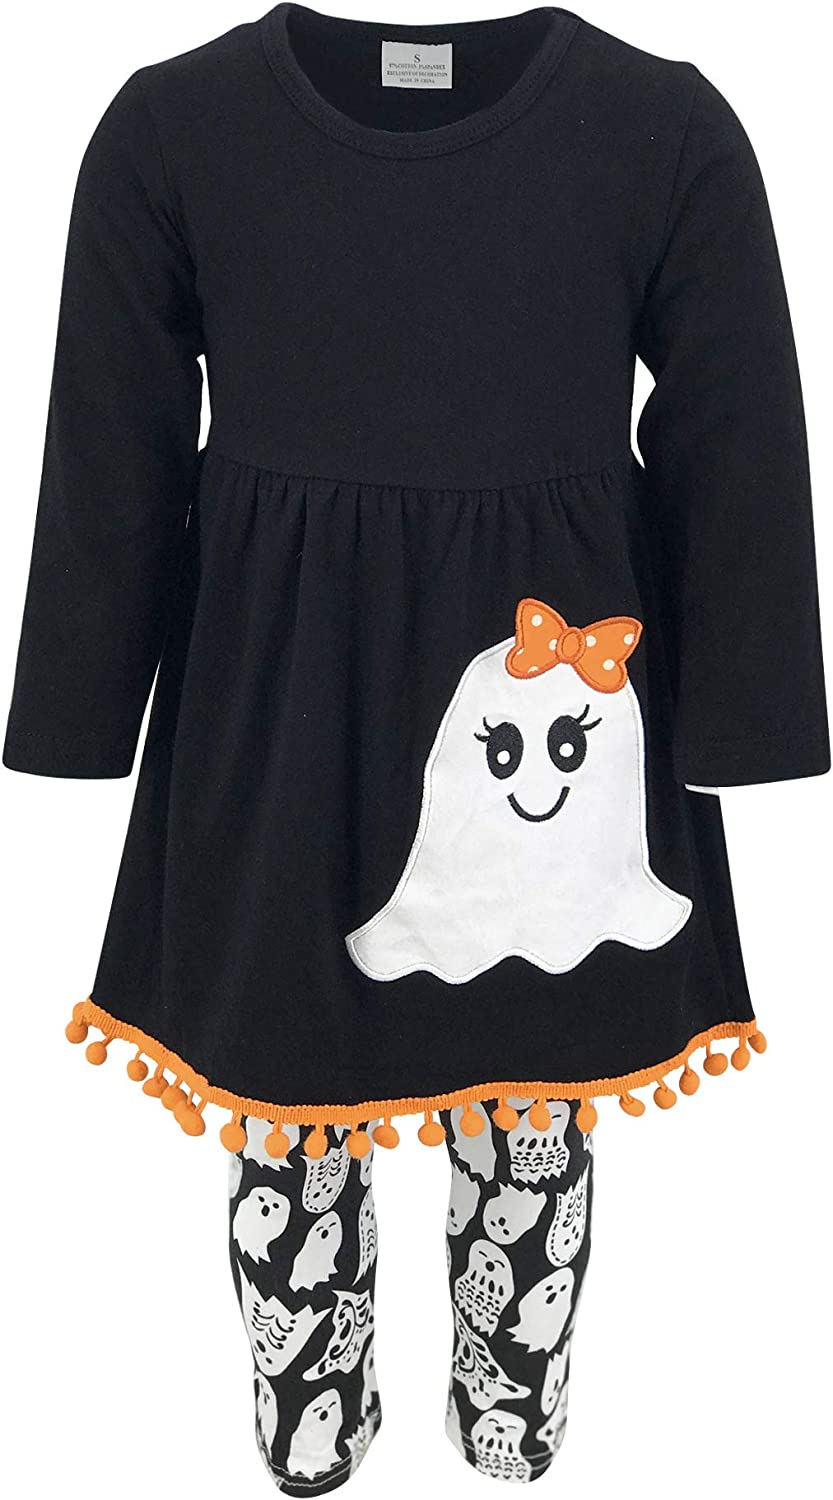 Unique Baby Girls 3 Piece Ghost Halloween Outfit with Infinity Scarf